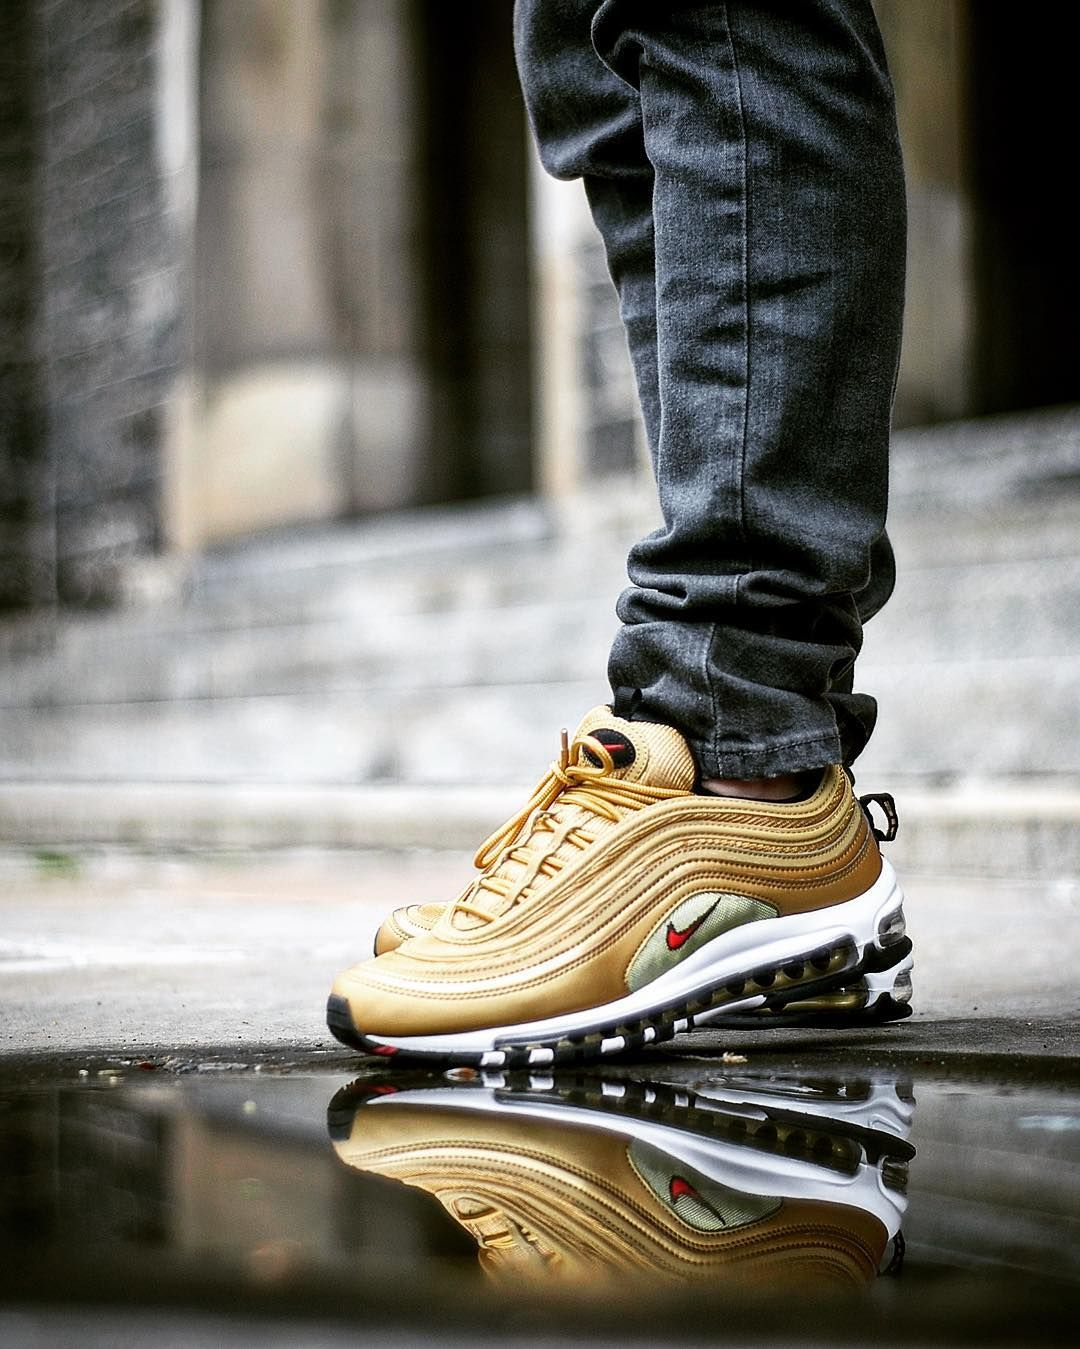 Gold Air Max 97 Outfit : outfit,